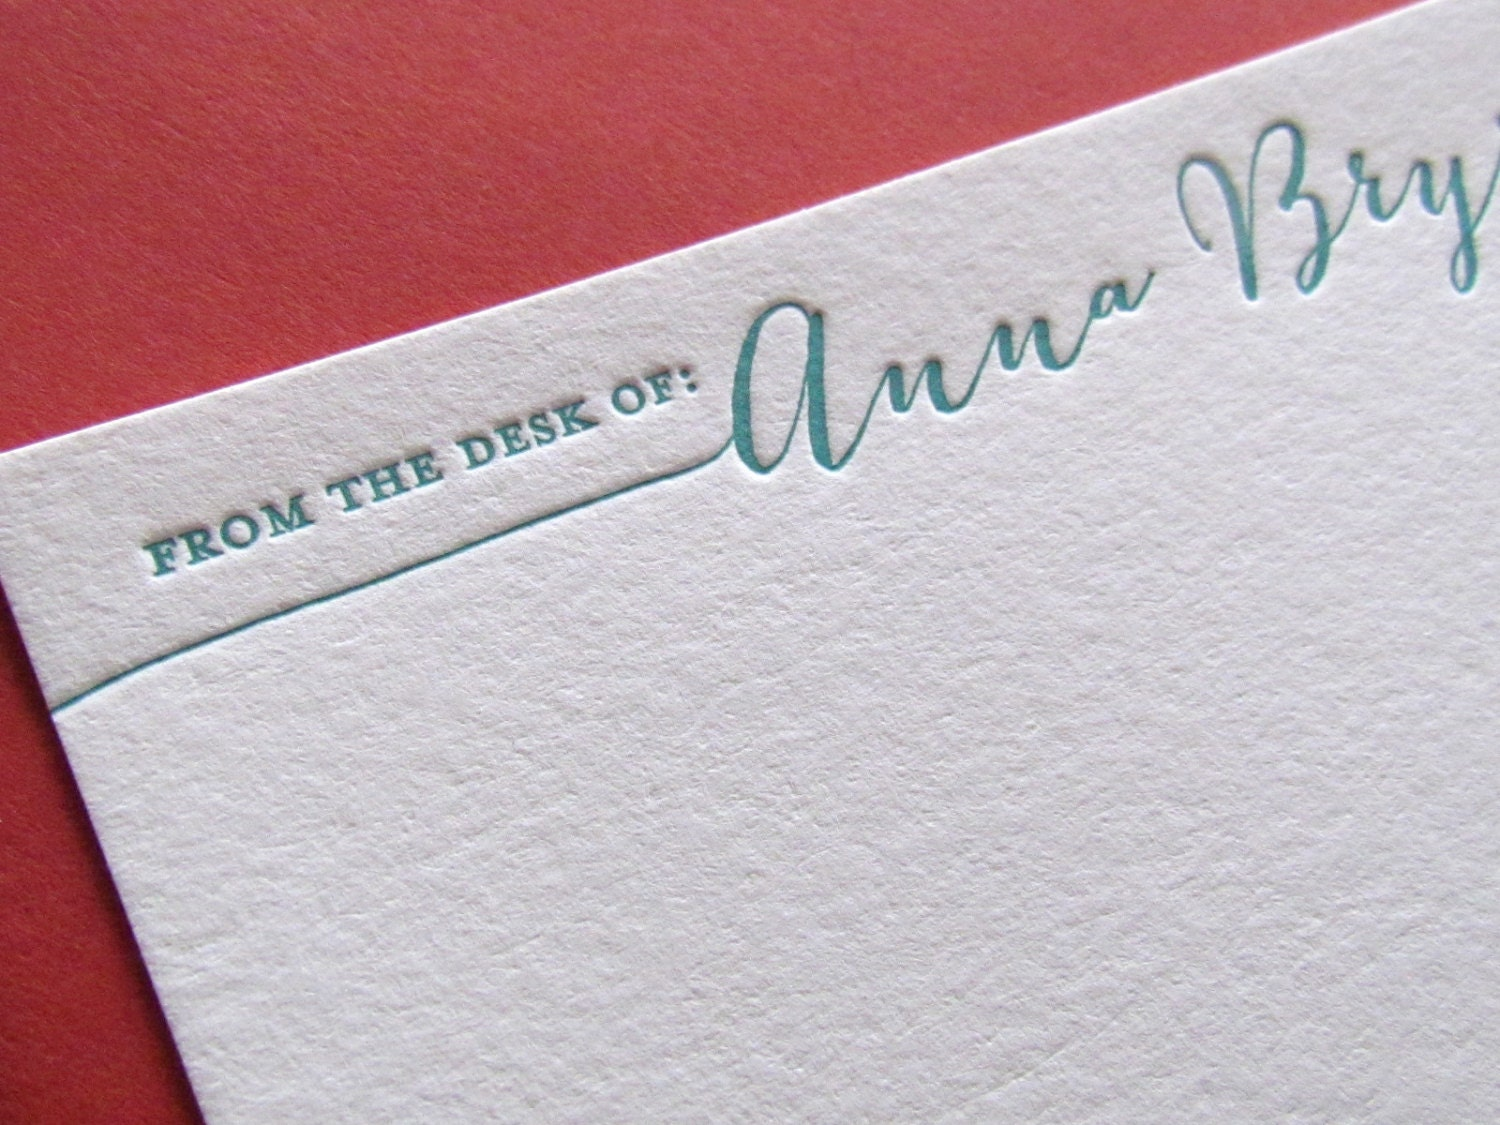 Letterpress from the desk of personalized stationery set